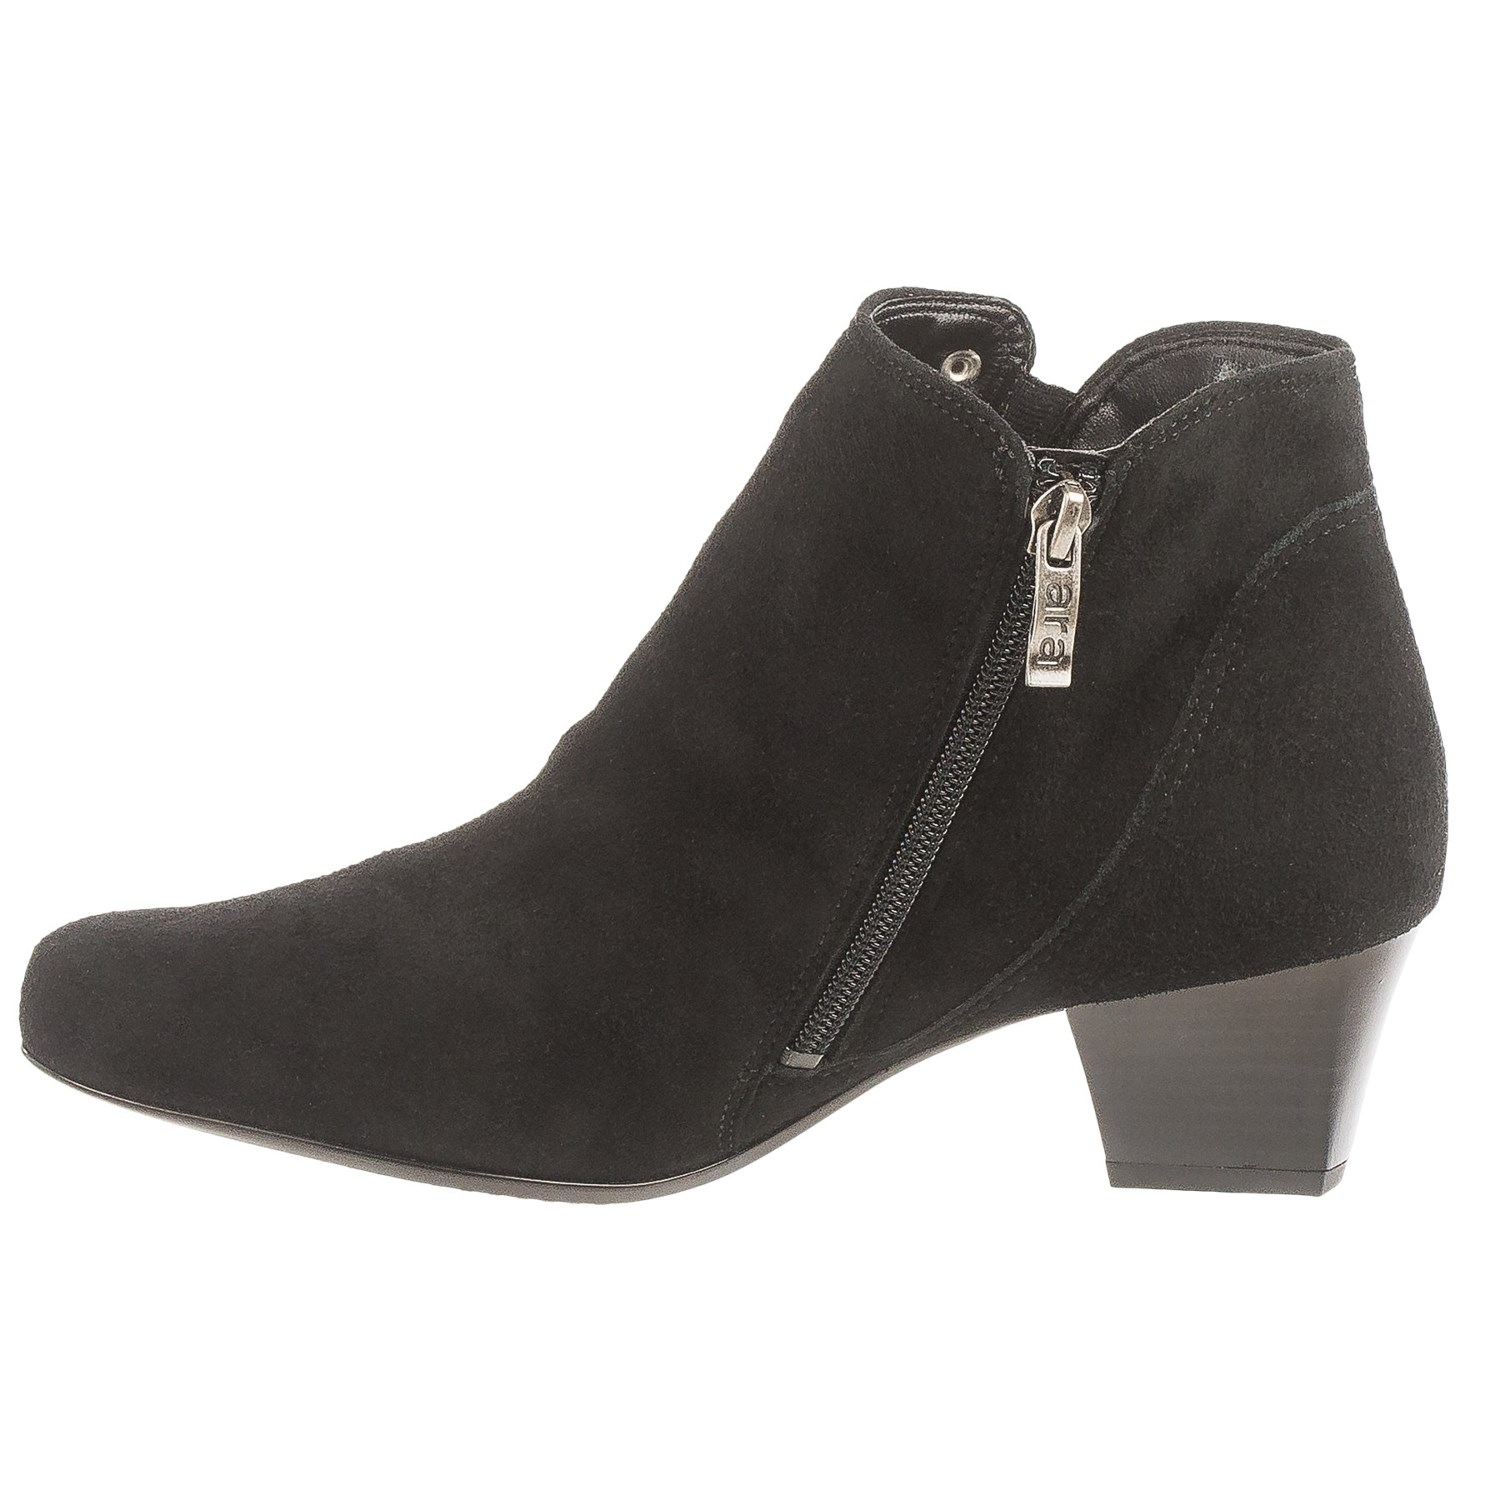 Ara Onyx Ankle Boots (For Women) - Save 84%